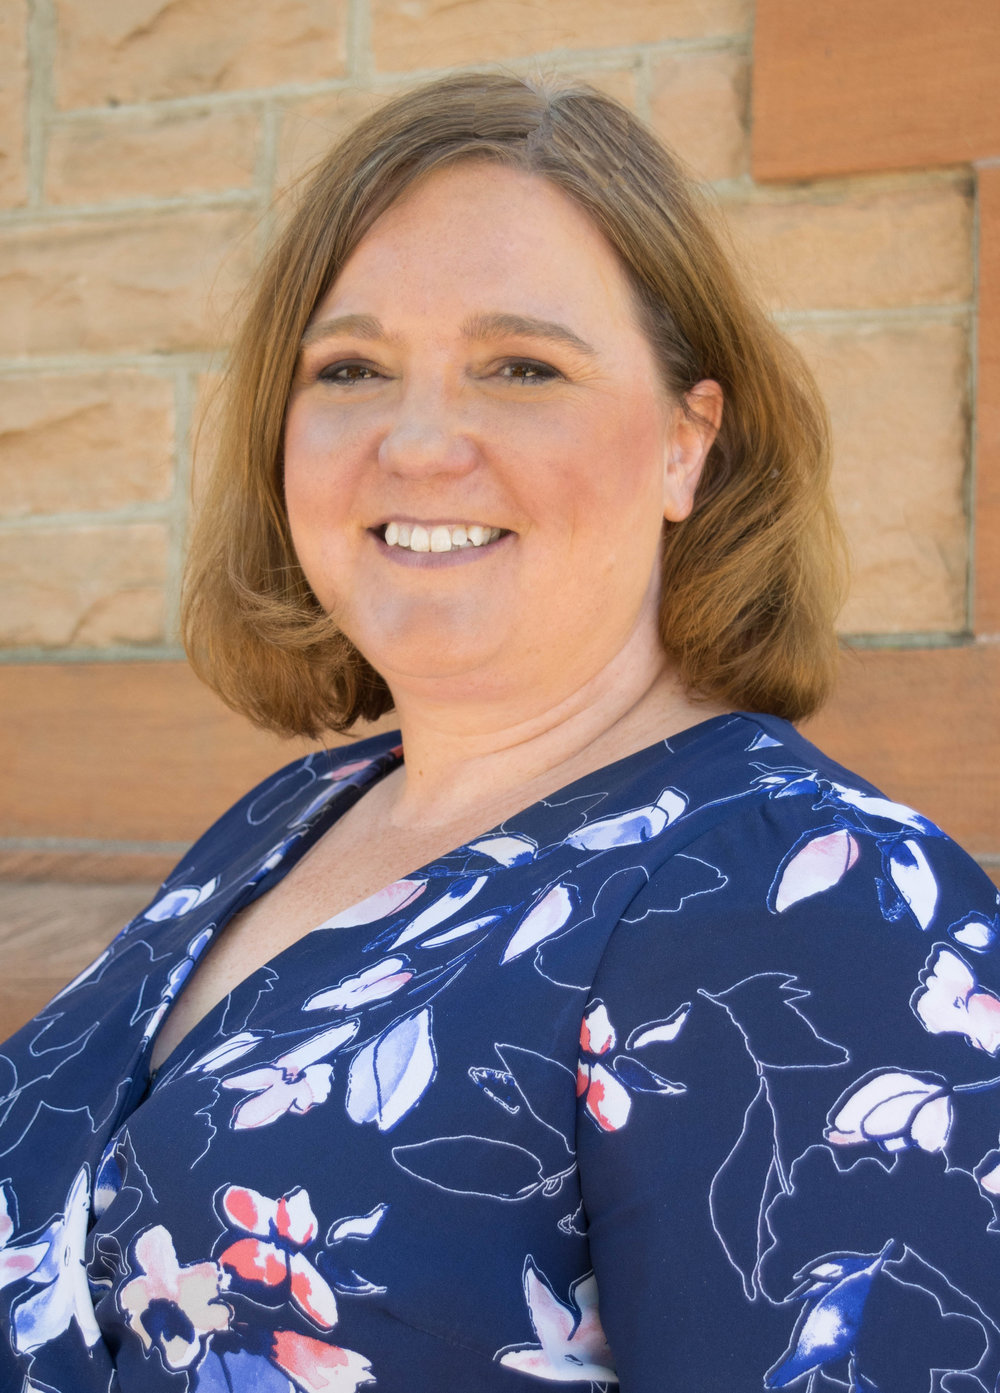 HOLLY HALL  EMPLOYMENT SPECIALIST & JOB DEVELOPER (CONTRACTOR) Holly joined CrossPurpose in May of 2018 after more than a decade of experience as a career coach and career services professional. As the Employment Specialist and Job Developer, Holly builds relationships with employers across the Denver metro area in an effort to connect our Leaders with available job opportunities. Holly also assists Leaders with resume writing and interviewing strategies. Outside of work, Holly's two teenage children are the center of her life, and she enjoys supporting them in all of their athletic and academic pursuits. An avid reader, Holly's favorite free-time spots are bookstores and the local library.